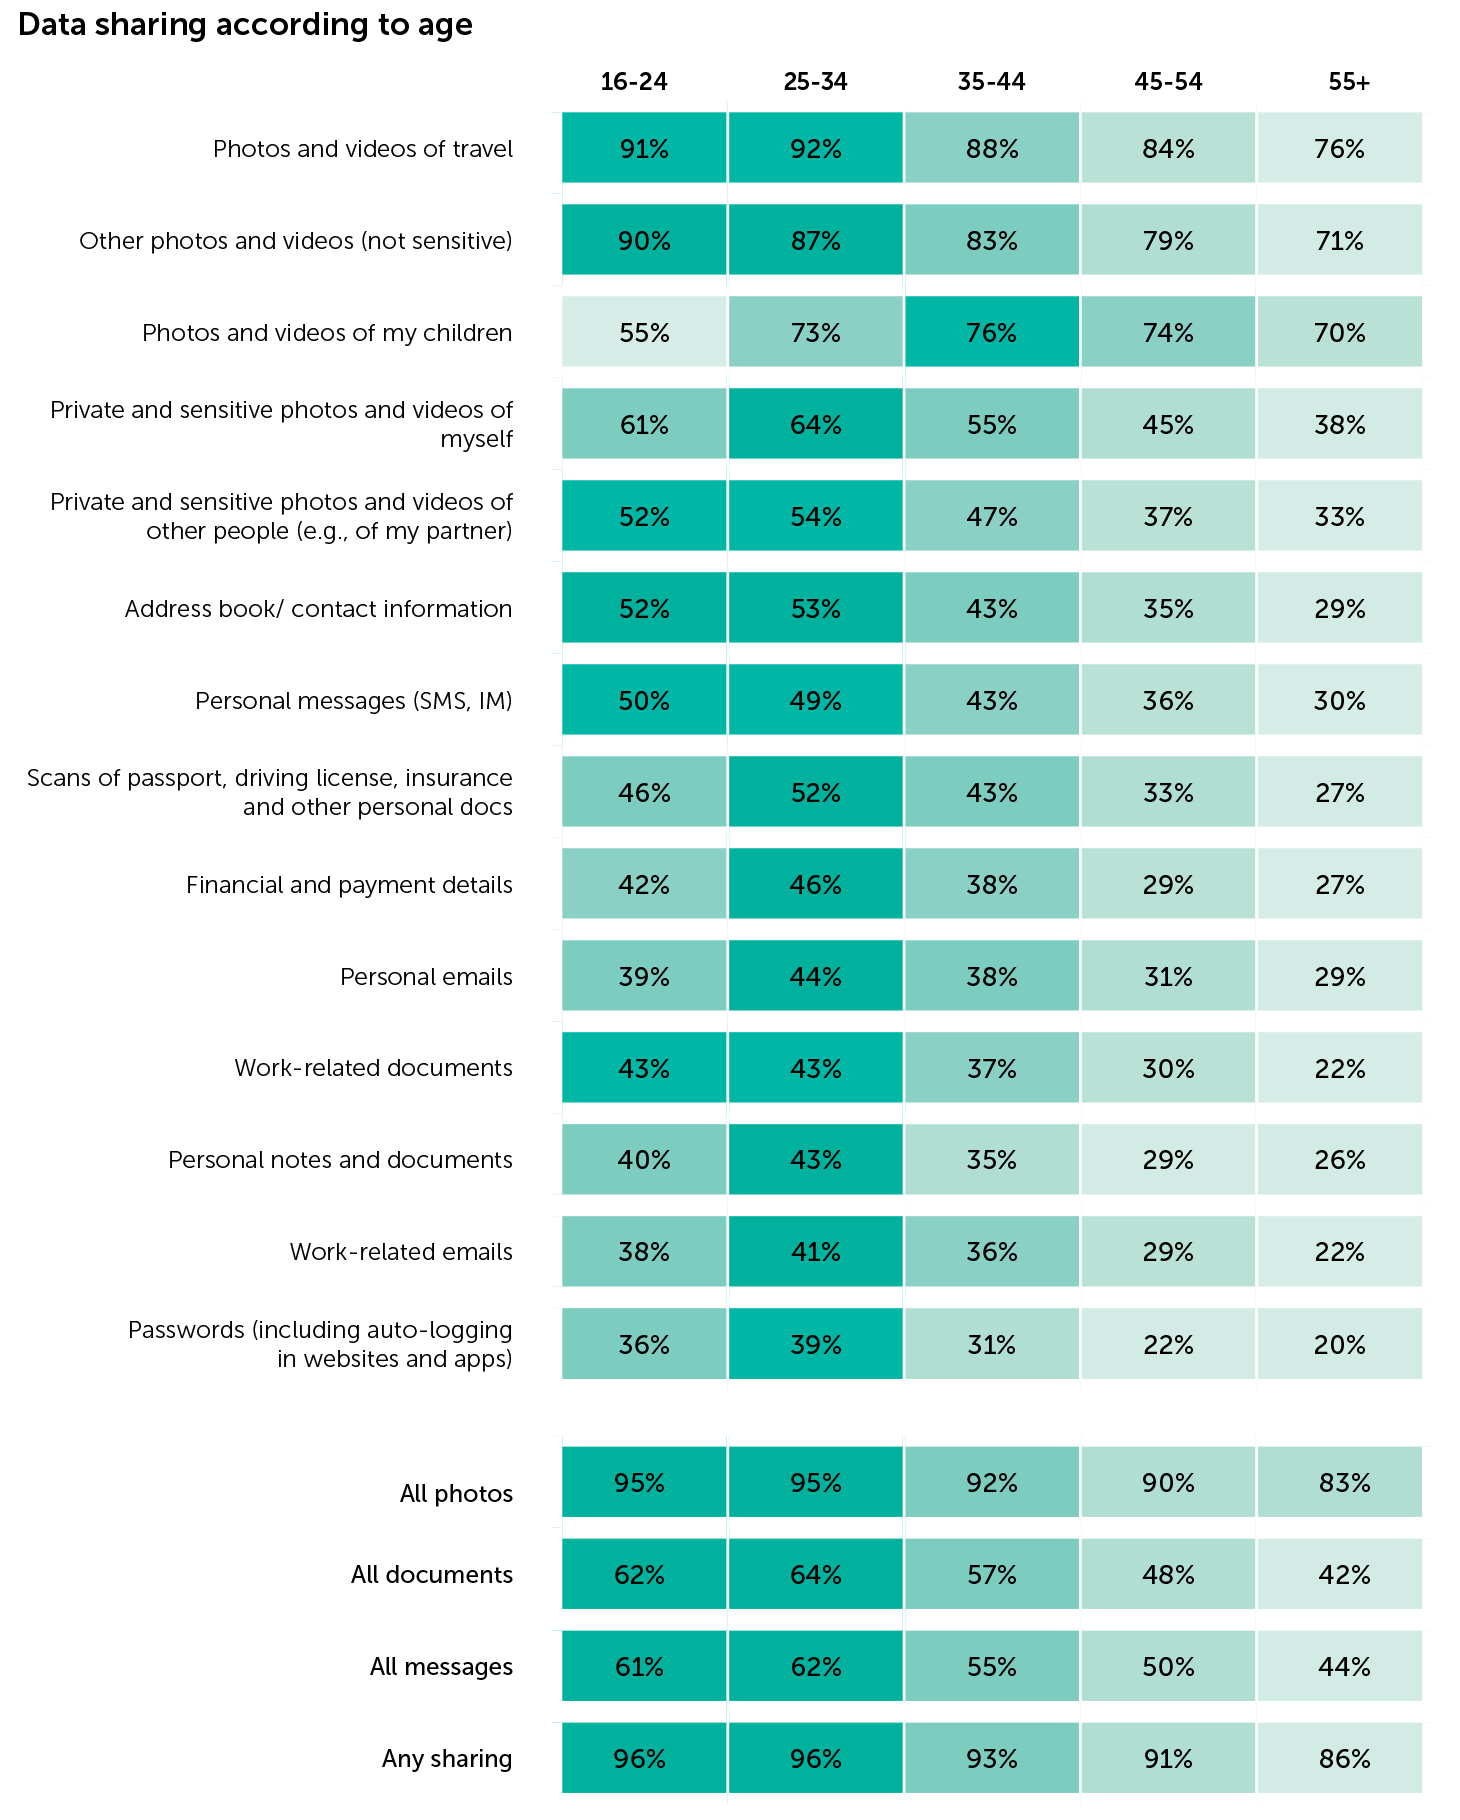 Data sharing according to age